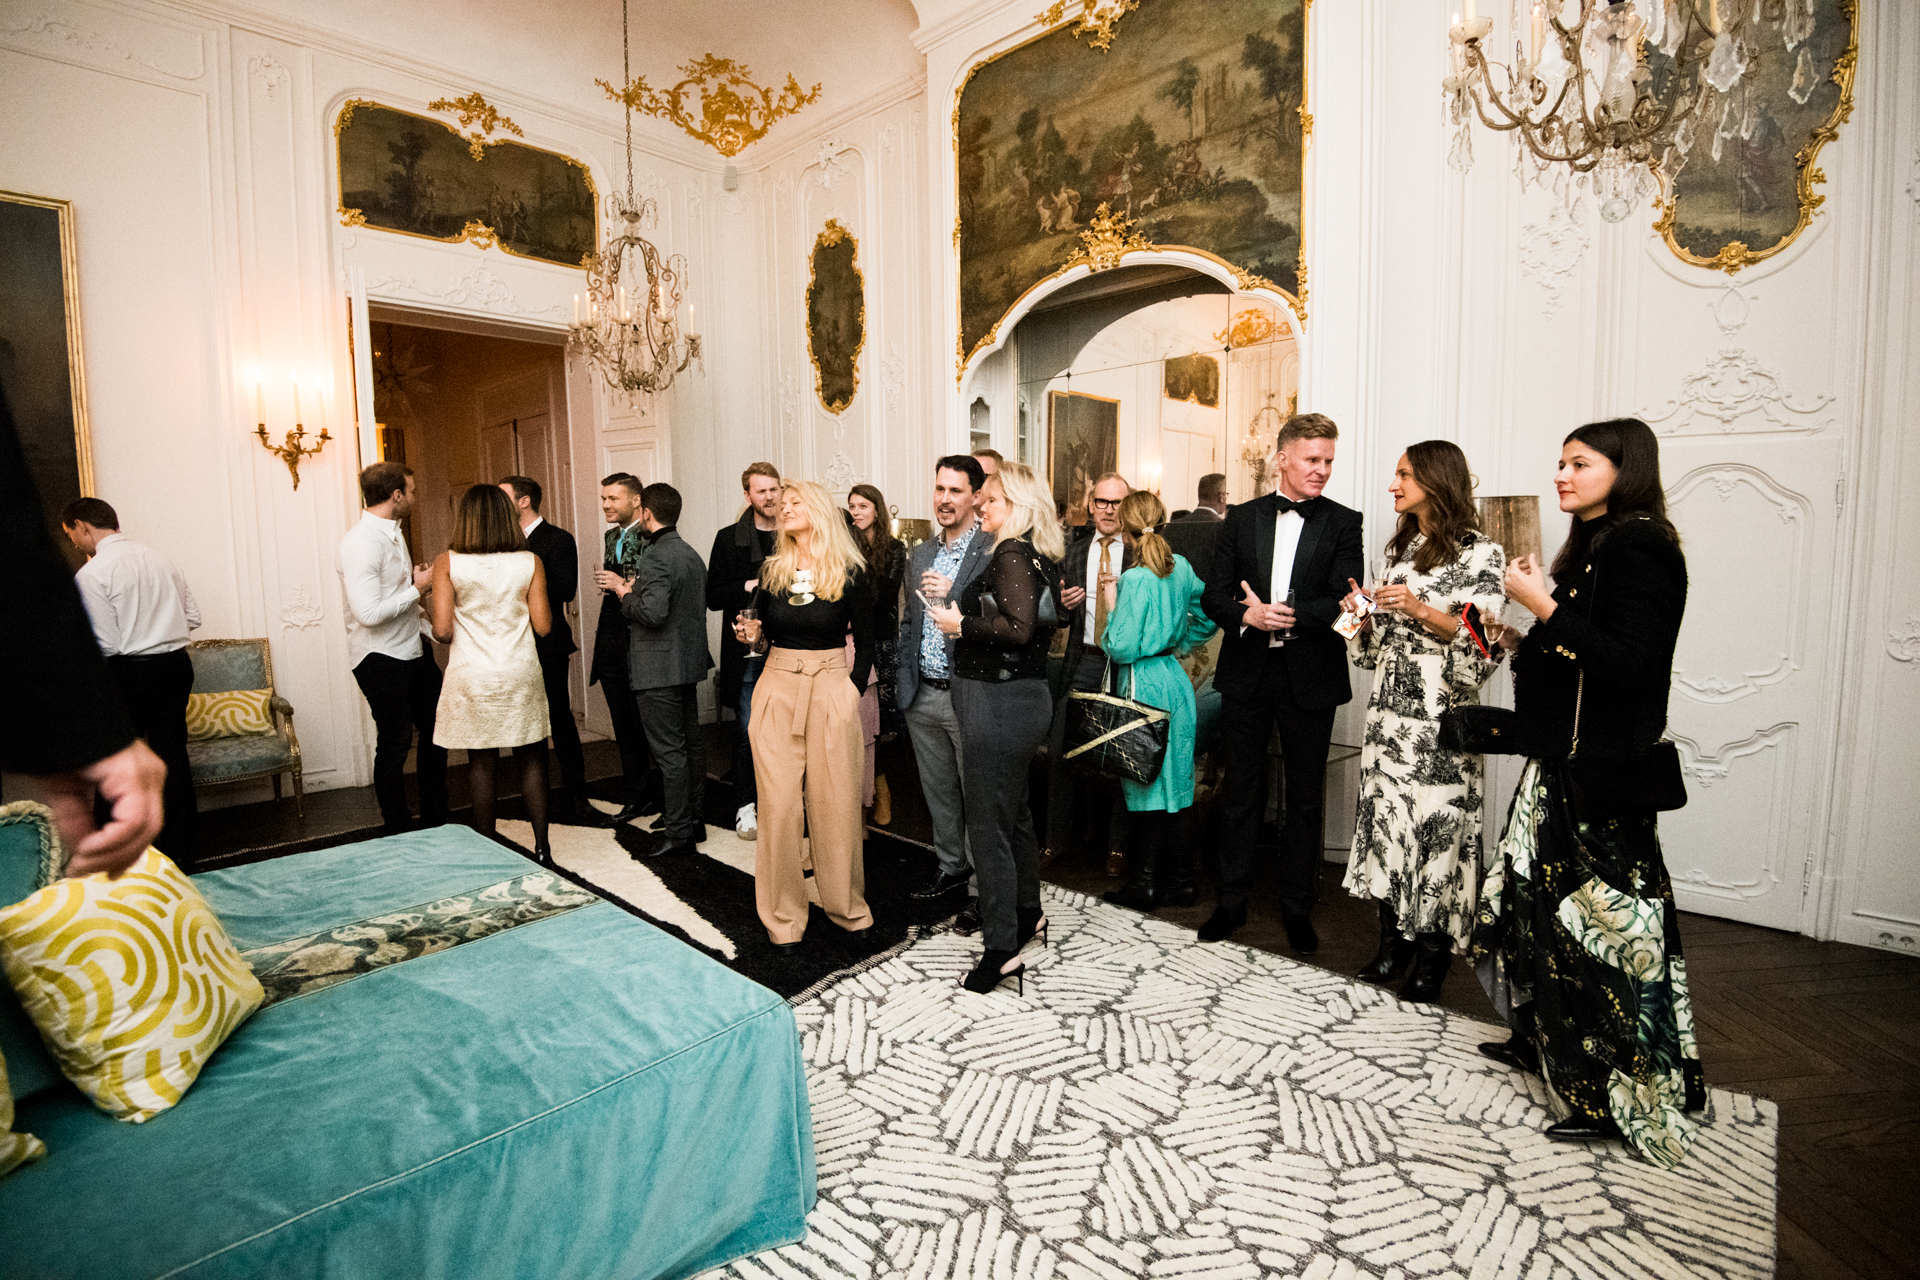 The room was appointed with rugs from Marc Phillips and fabric from Castel.